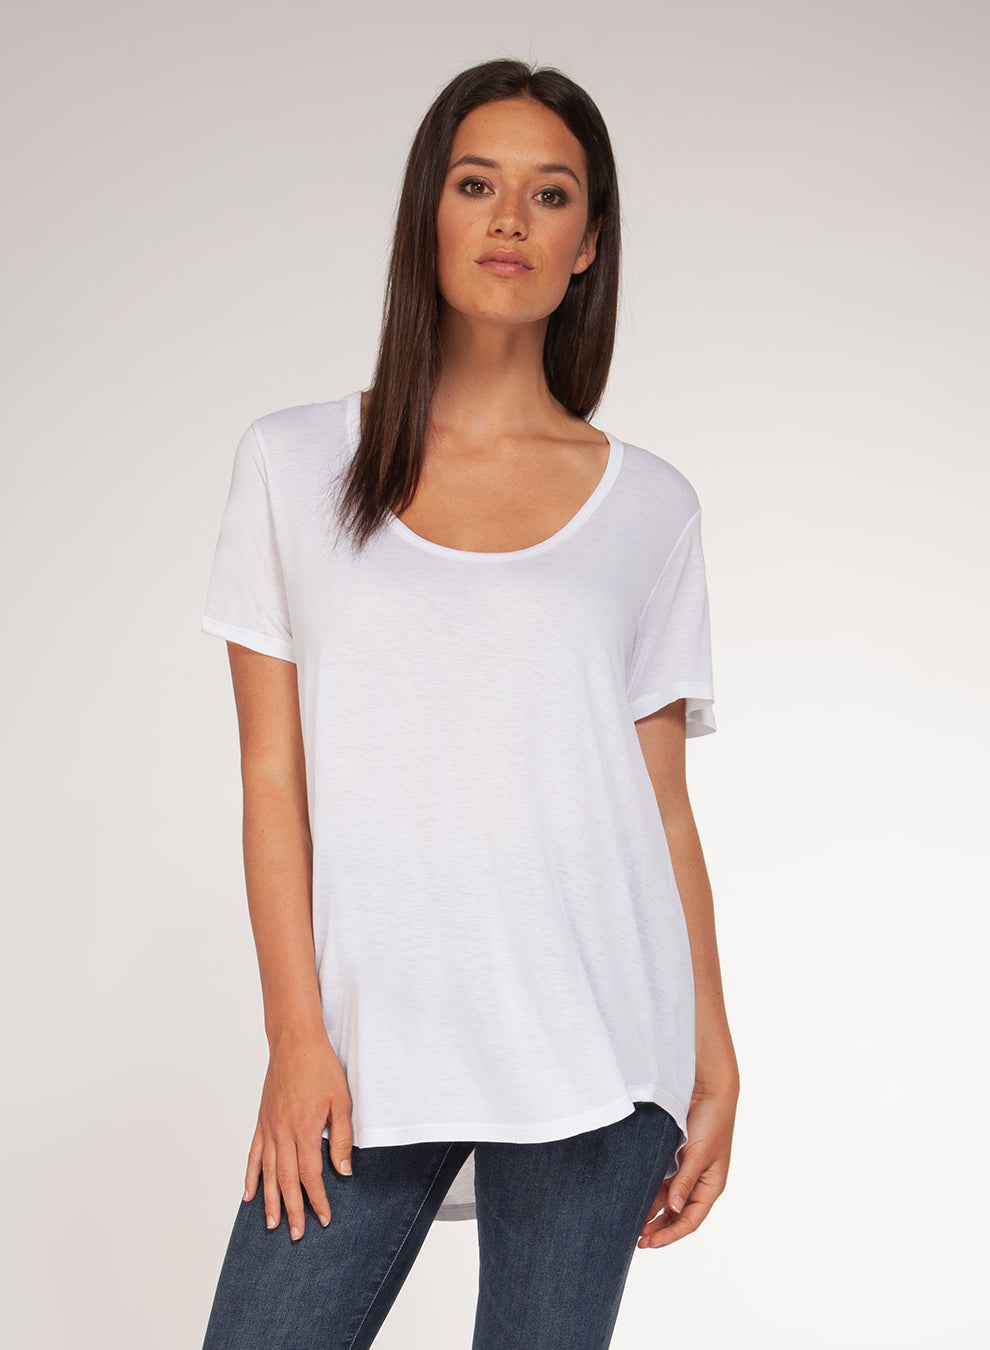 SHORT-SLEEVED SCOOP NECK BASIC TEE- WHITE